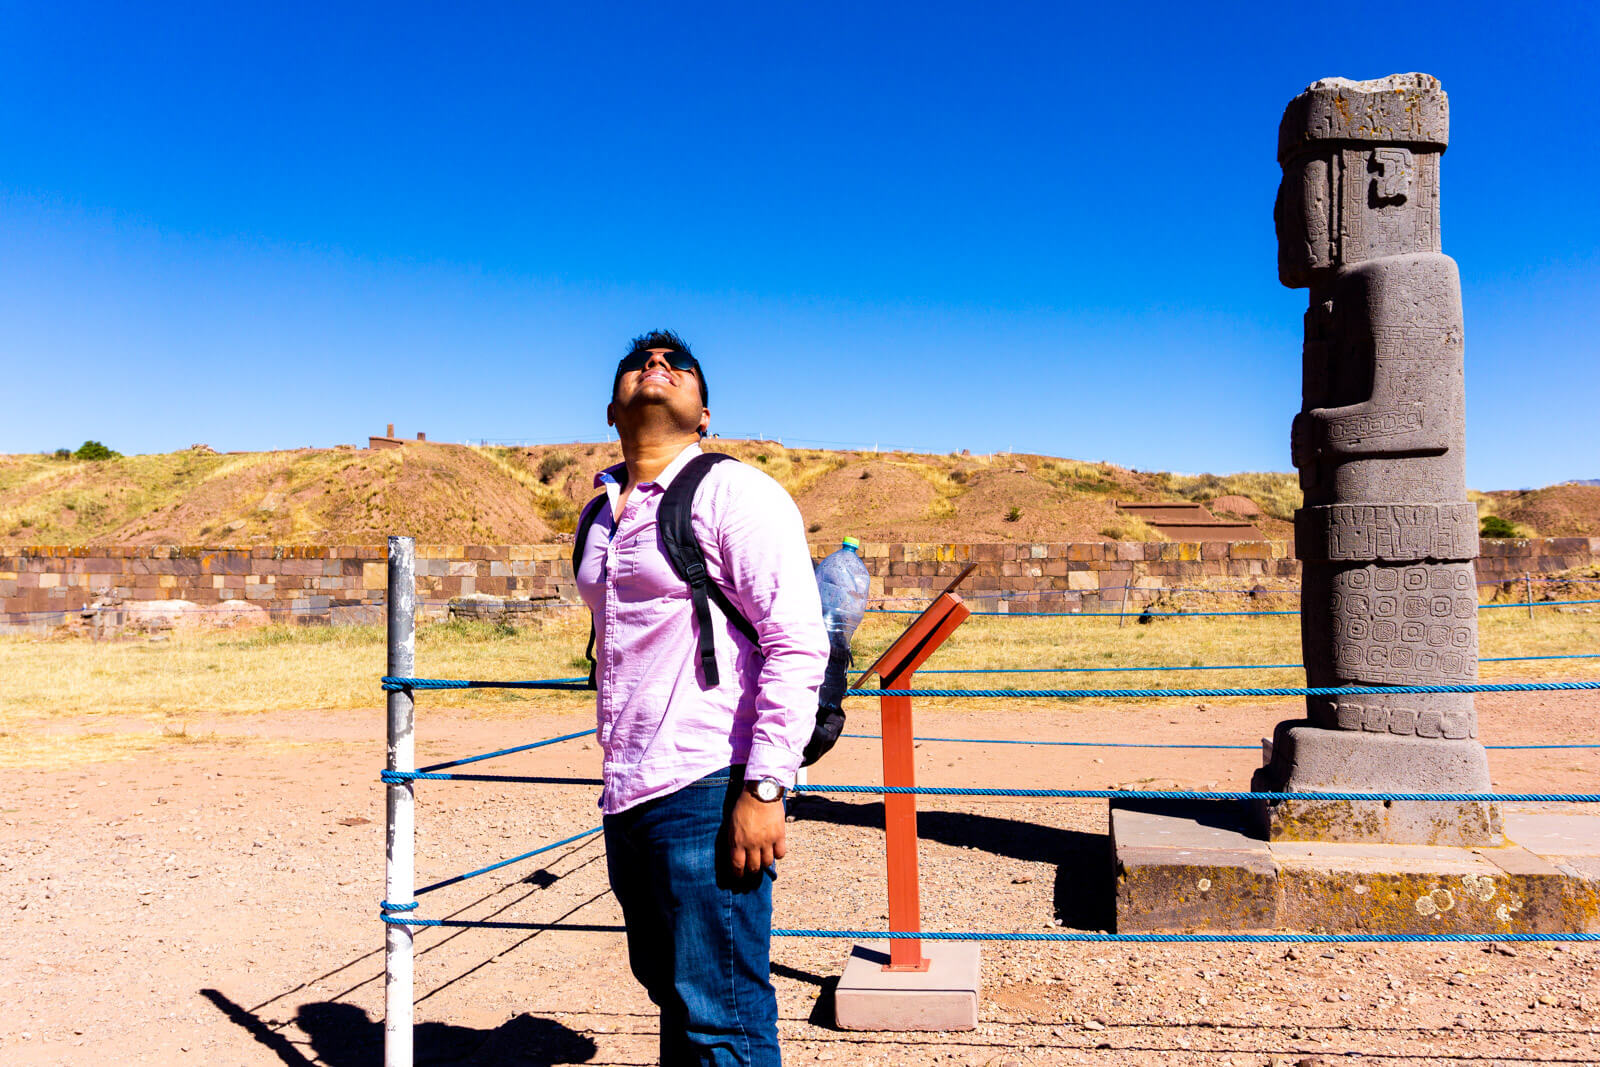 The Man of Wonders at Tiwanaku Ruins in Bolivia